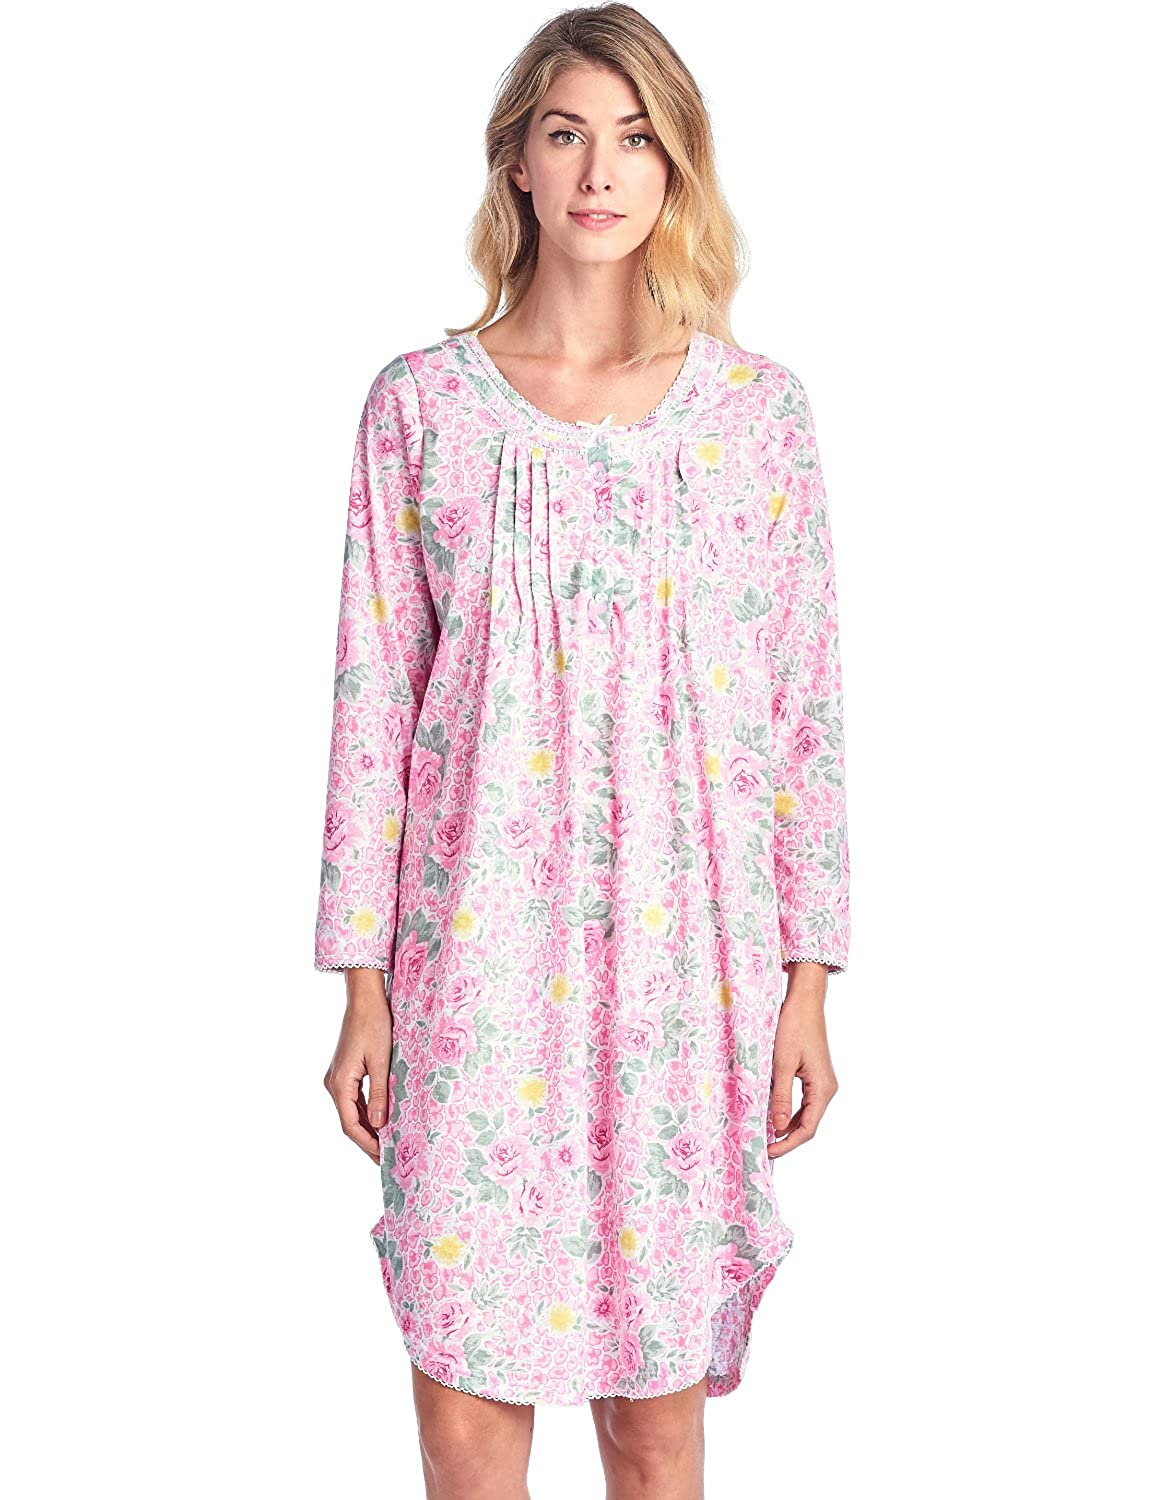 Casual Nights Women's Round Neck Long Sleeve Lace Floral Nightgown Long Sleeve Floral Nightshirt